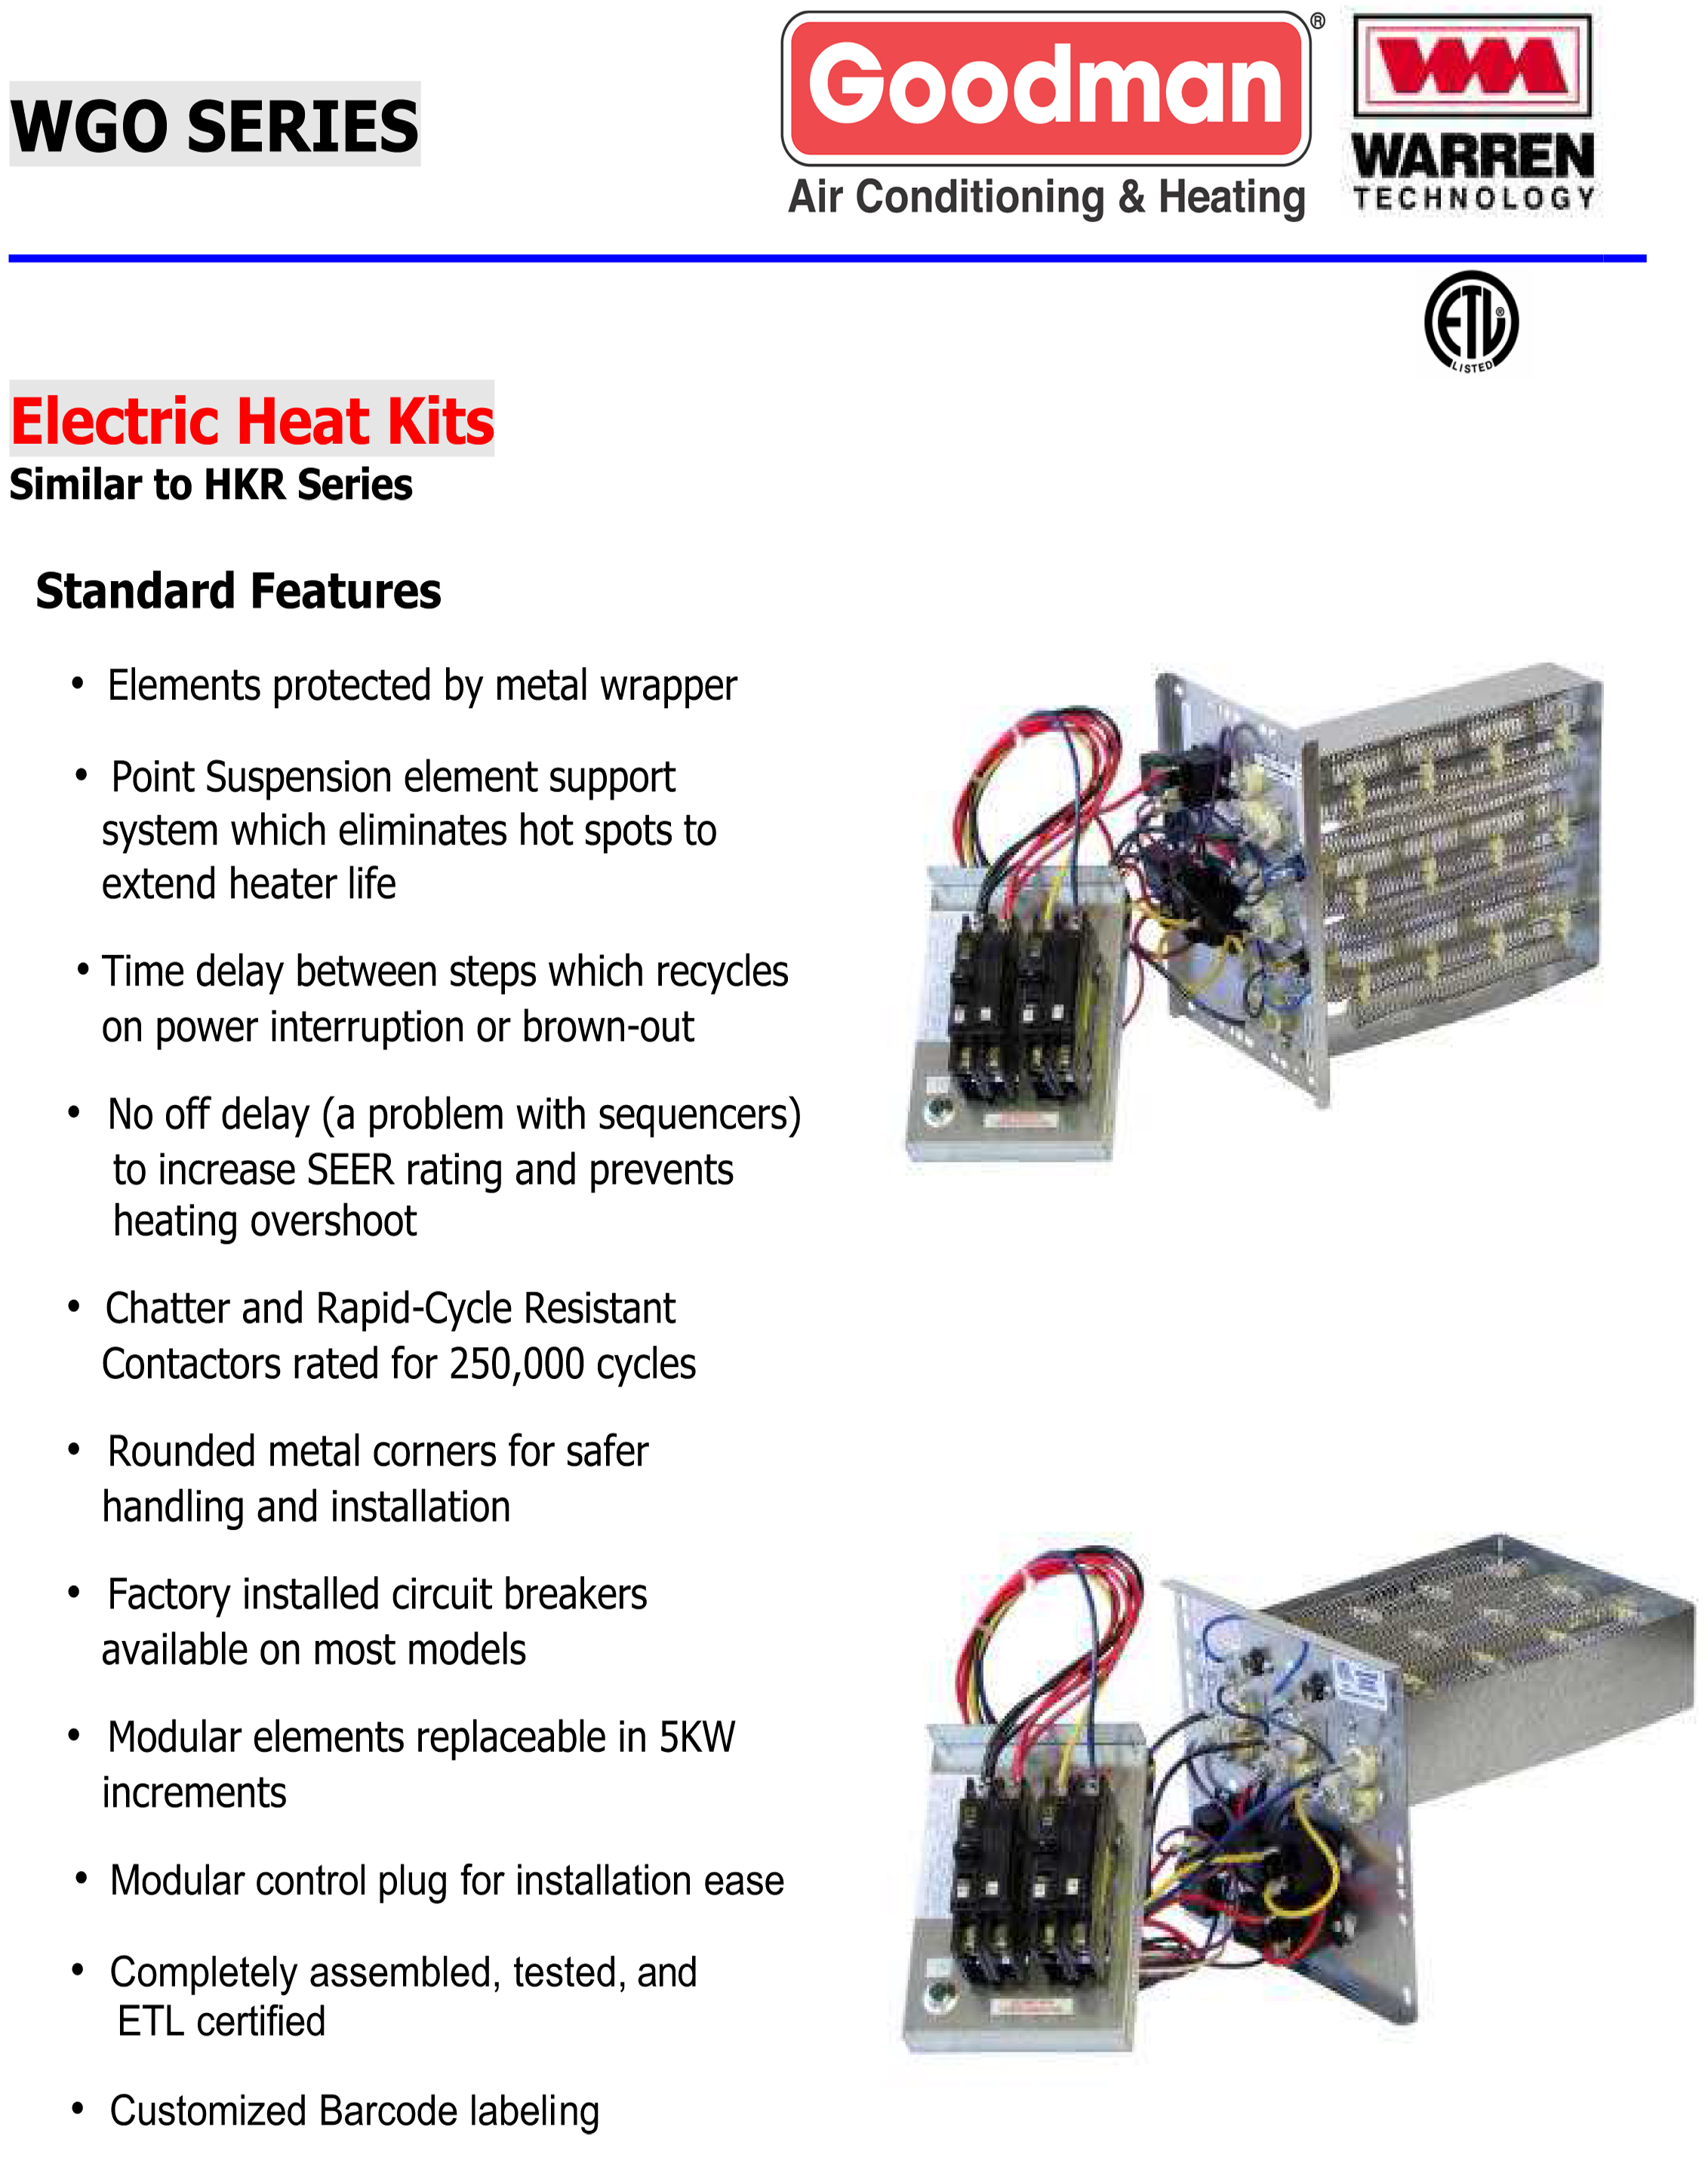 Goodman 10 Kw Electric Furnace >> Goodman Hkr 10 Wiring Diagram : 29 Wiring Diagram Images - Wiring Diagrams | Mifinder.co